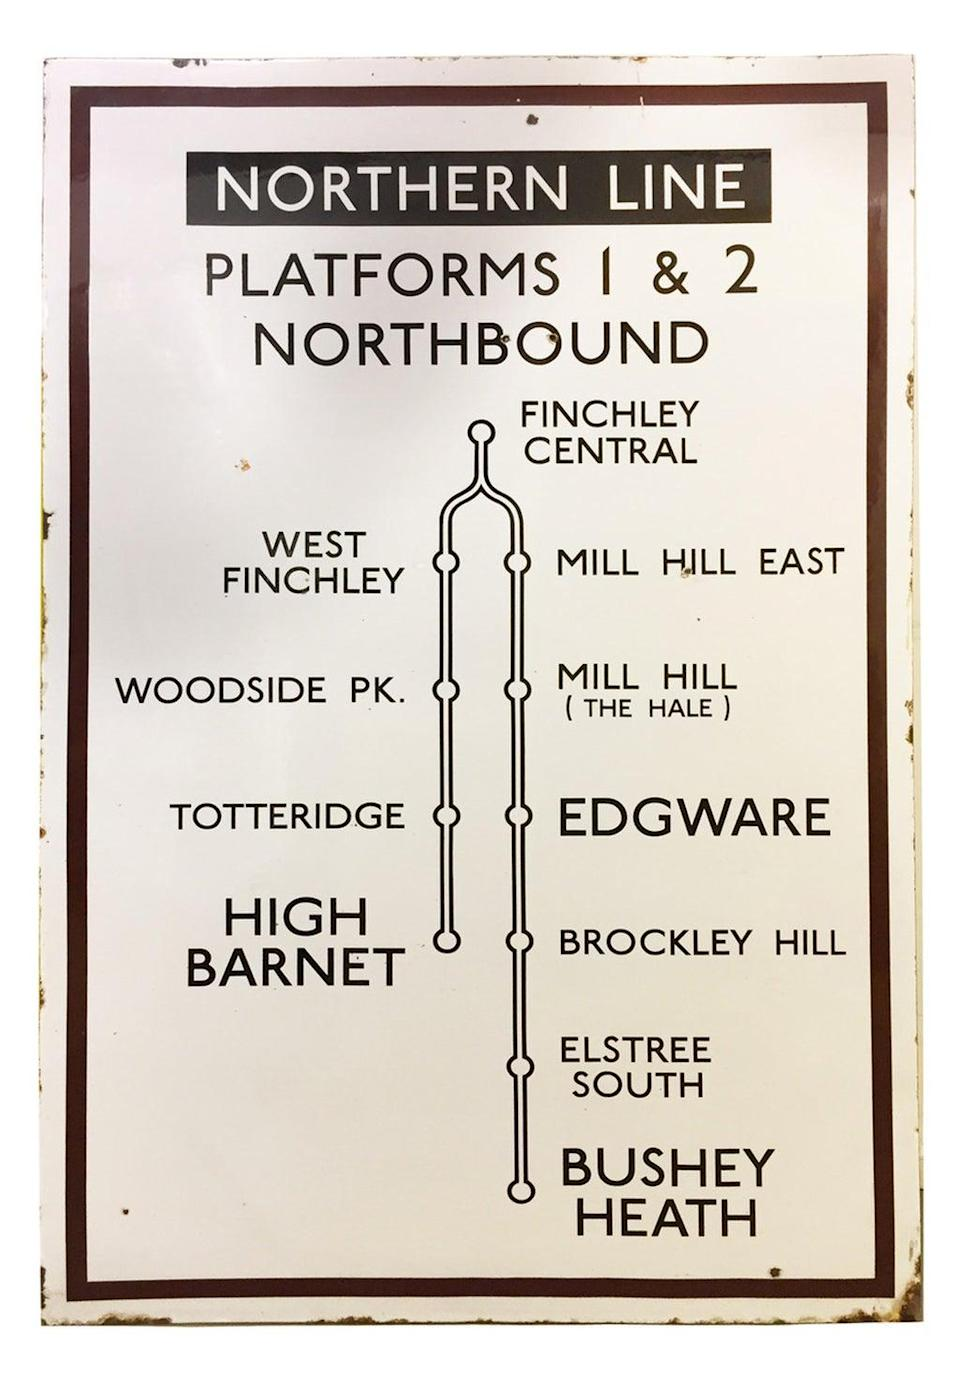 The Northern Line extension to Bushey Heath never happened but it did not stop signs being made. The enamel sign is expected to sell for between £800 and £1200 (Catherine Southon Auctioneers & Valuers/PA)